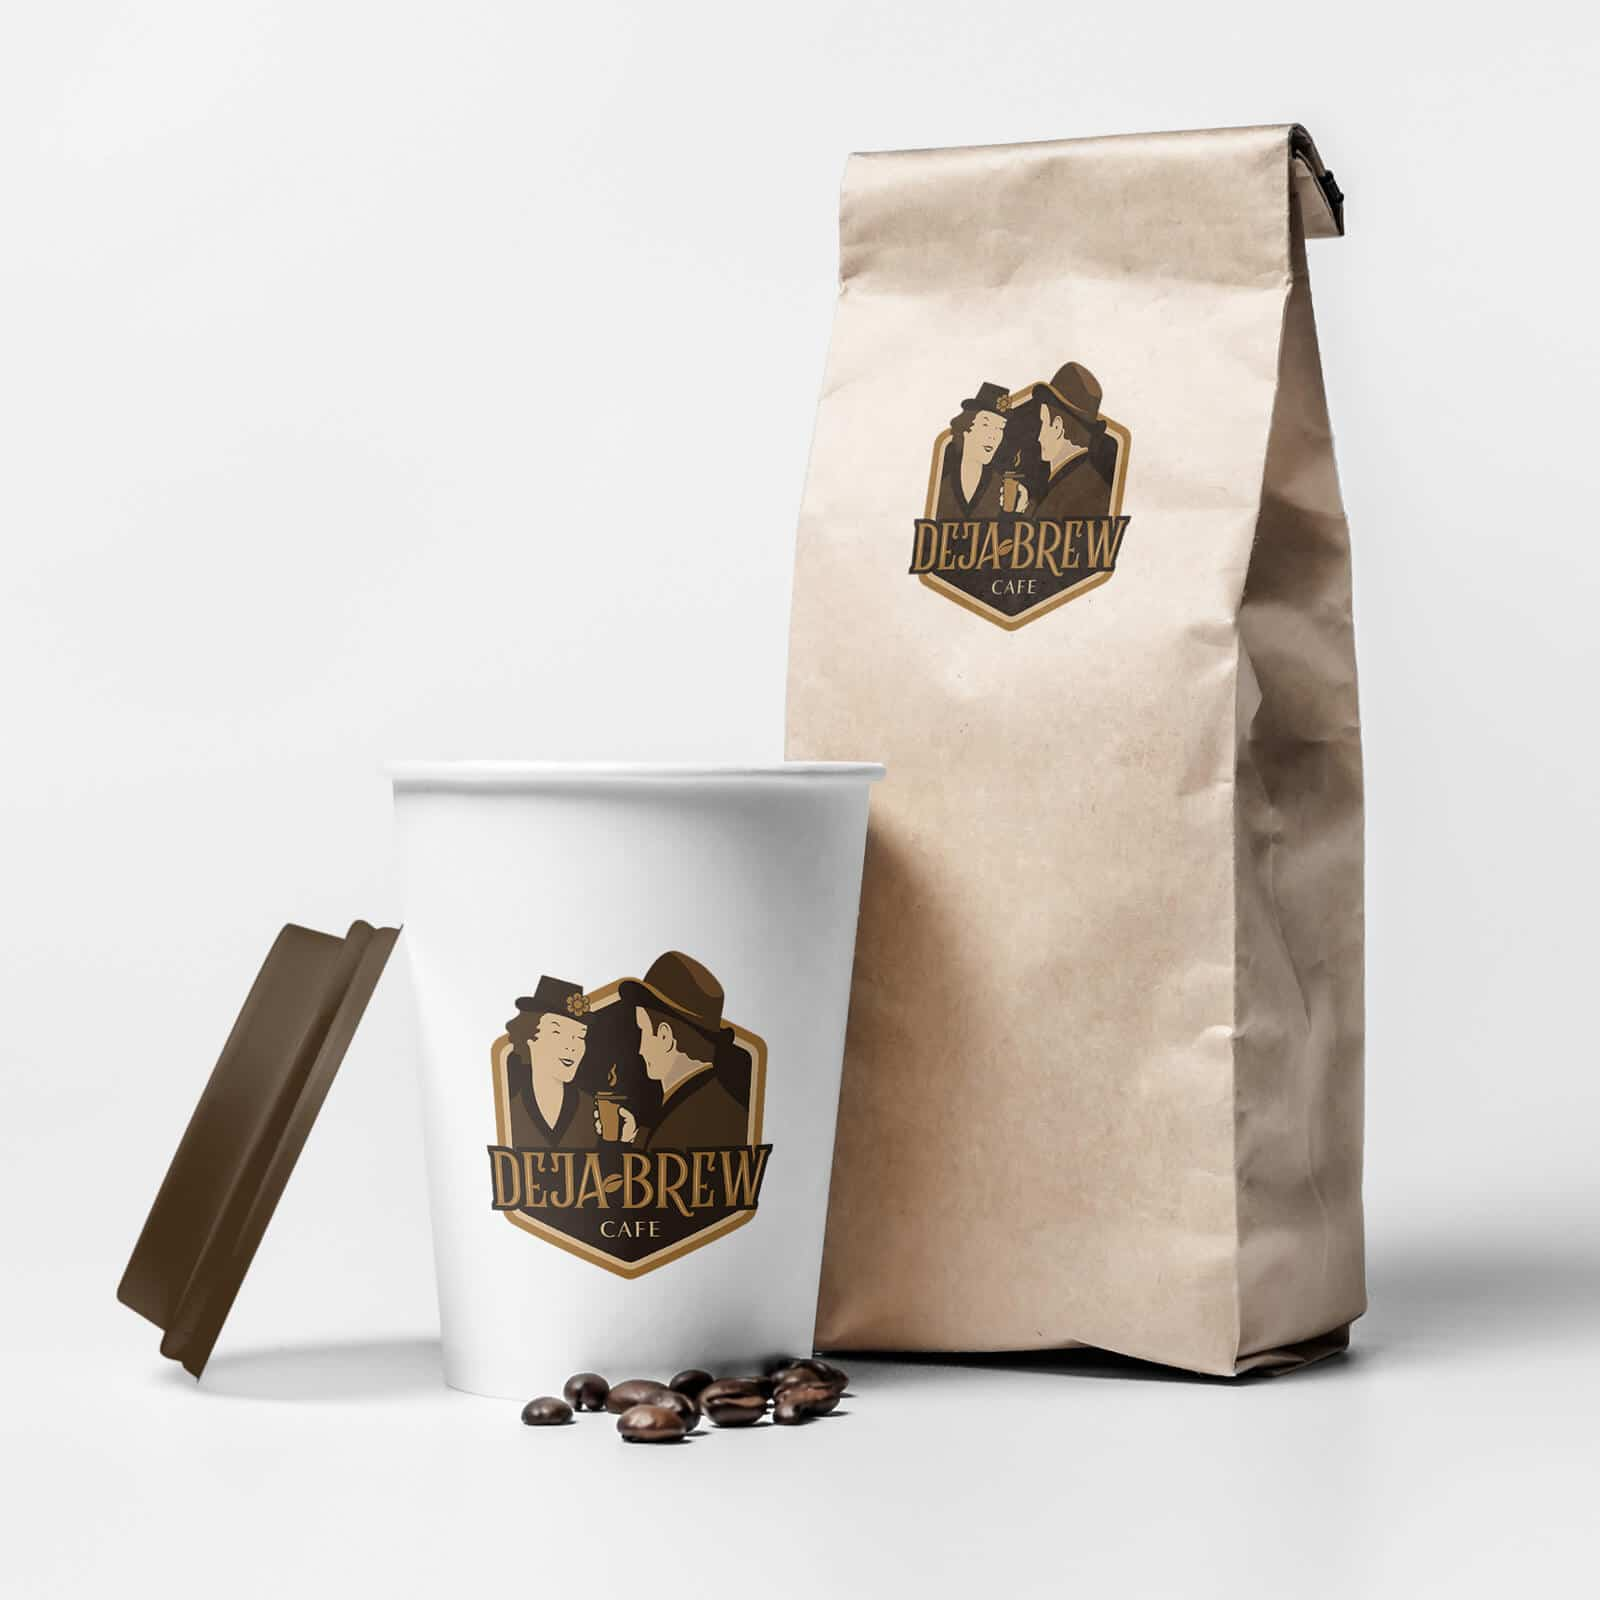 Coffee Cafe Package Branding